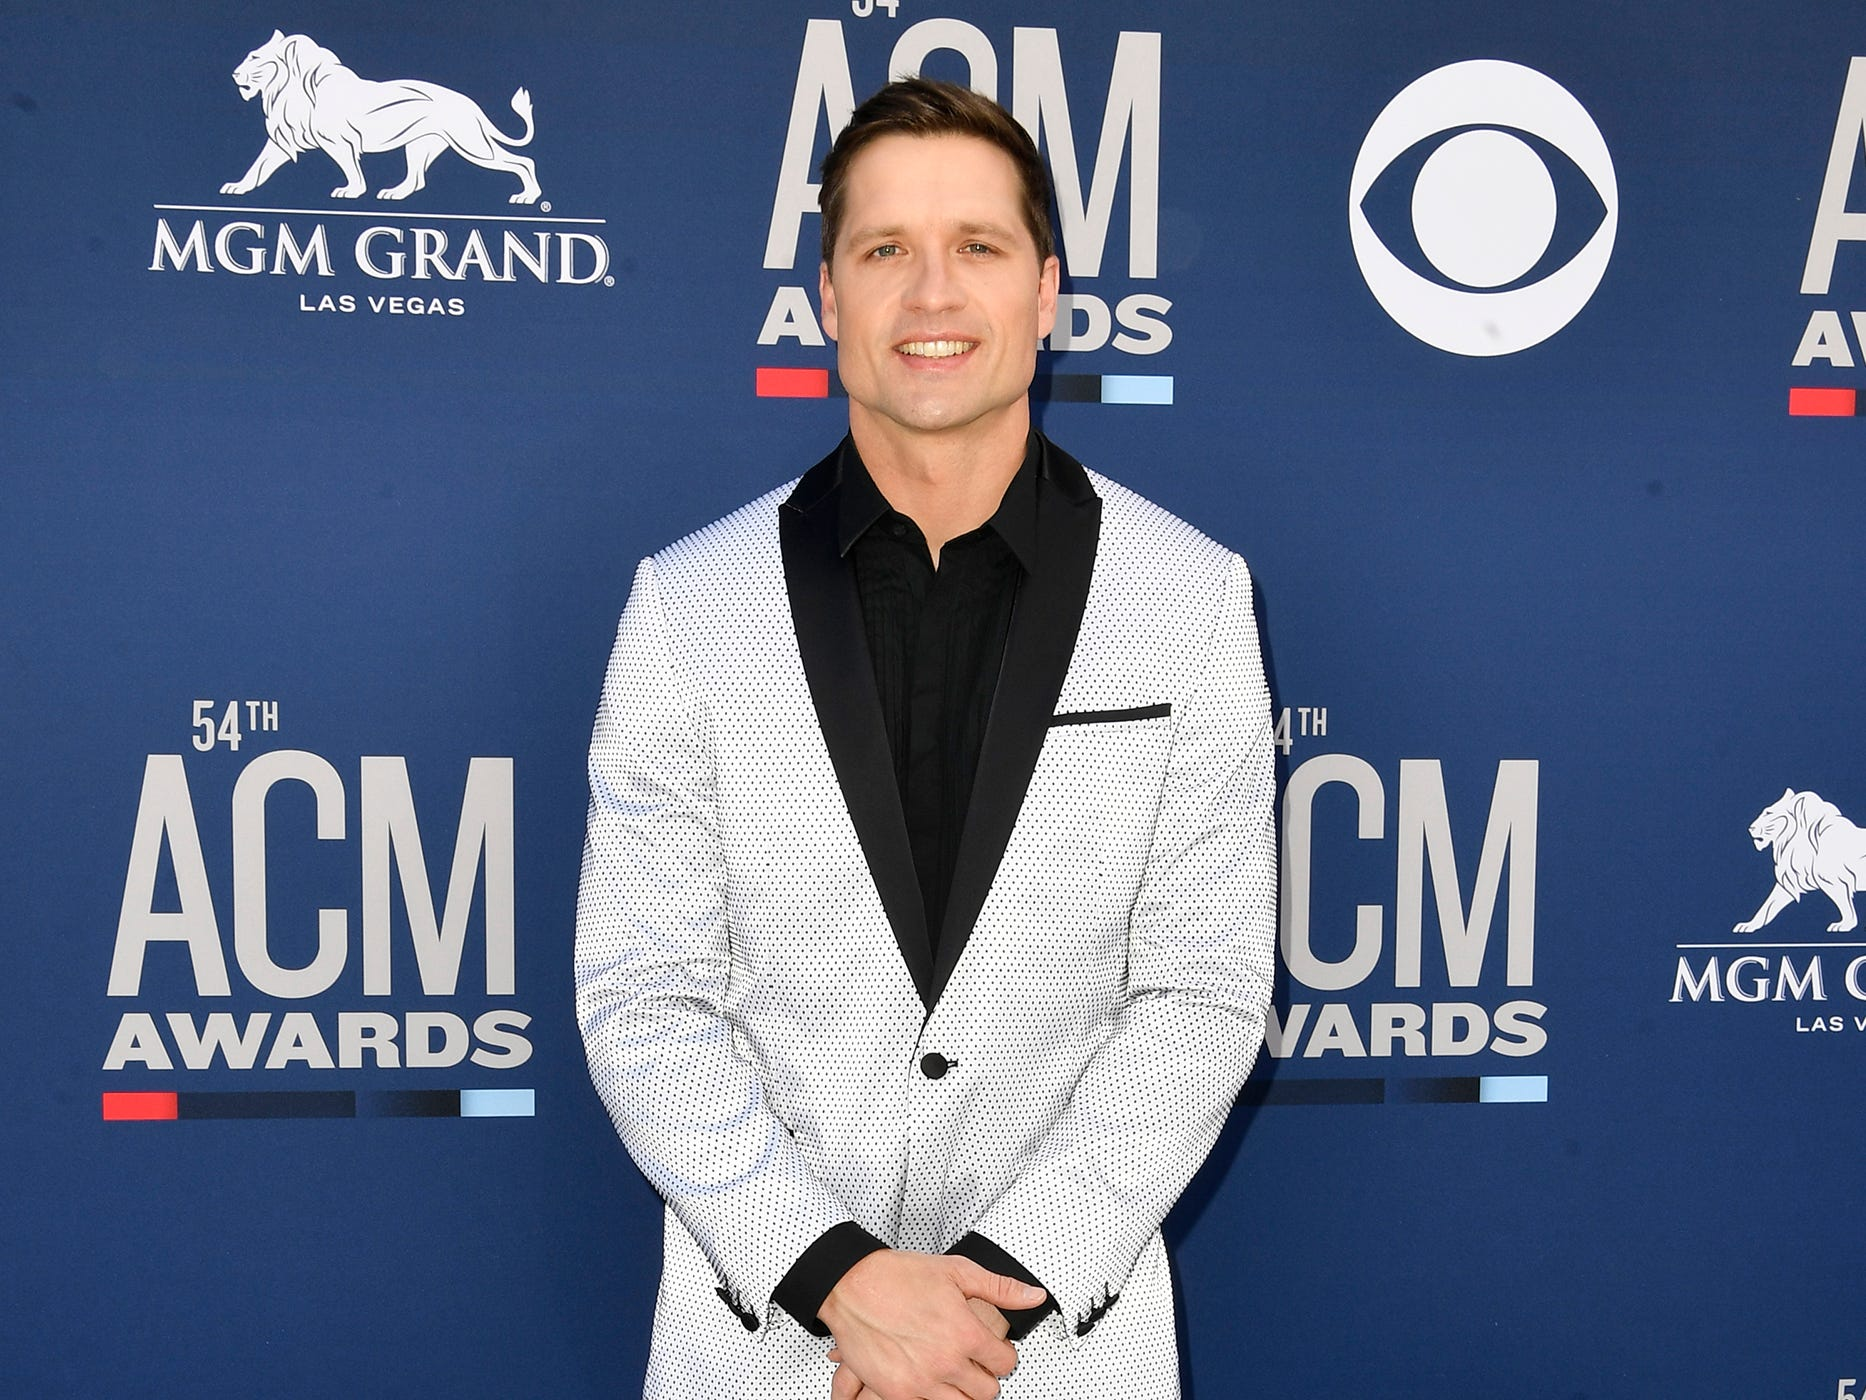 Walker Hayes walks the red carpet at the 54TH Academy of Country Music Awards Sunday, April 7, 2019, in Las Vegas, Nev.